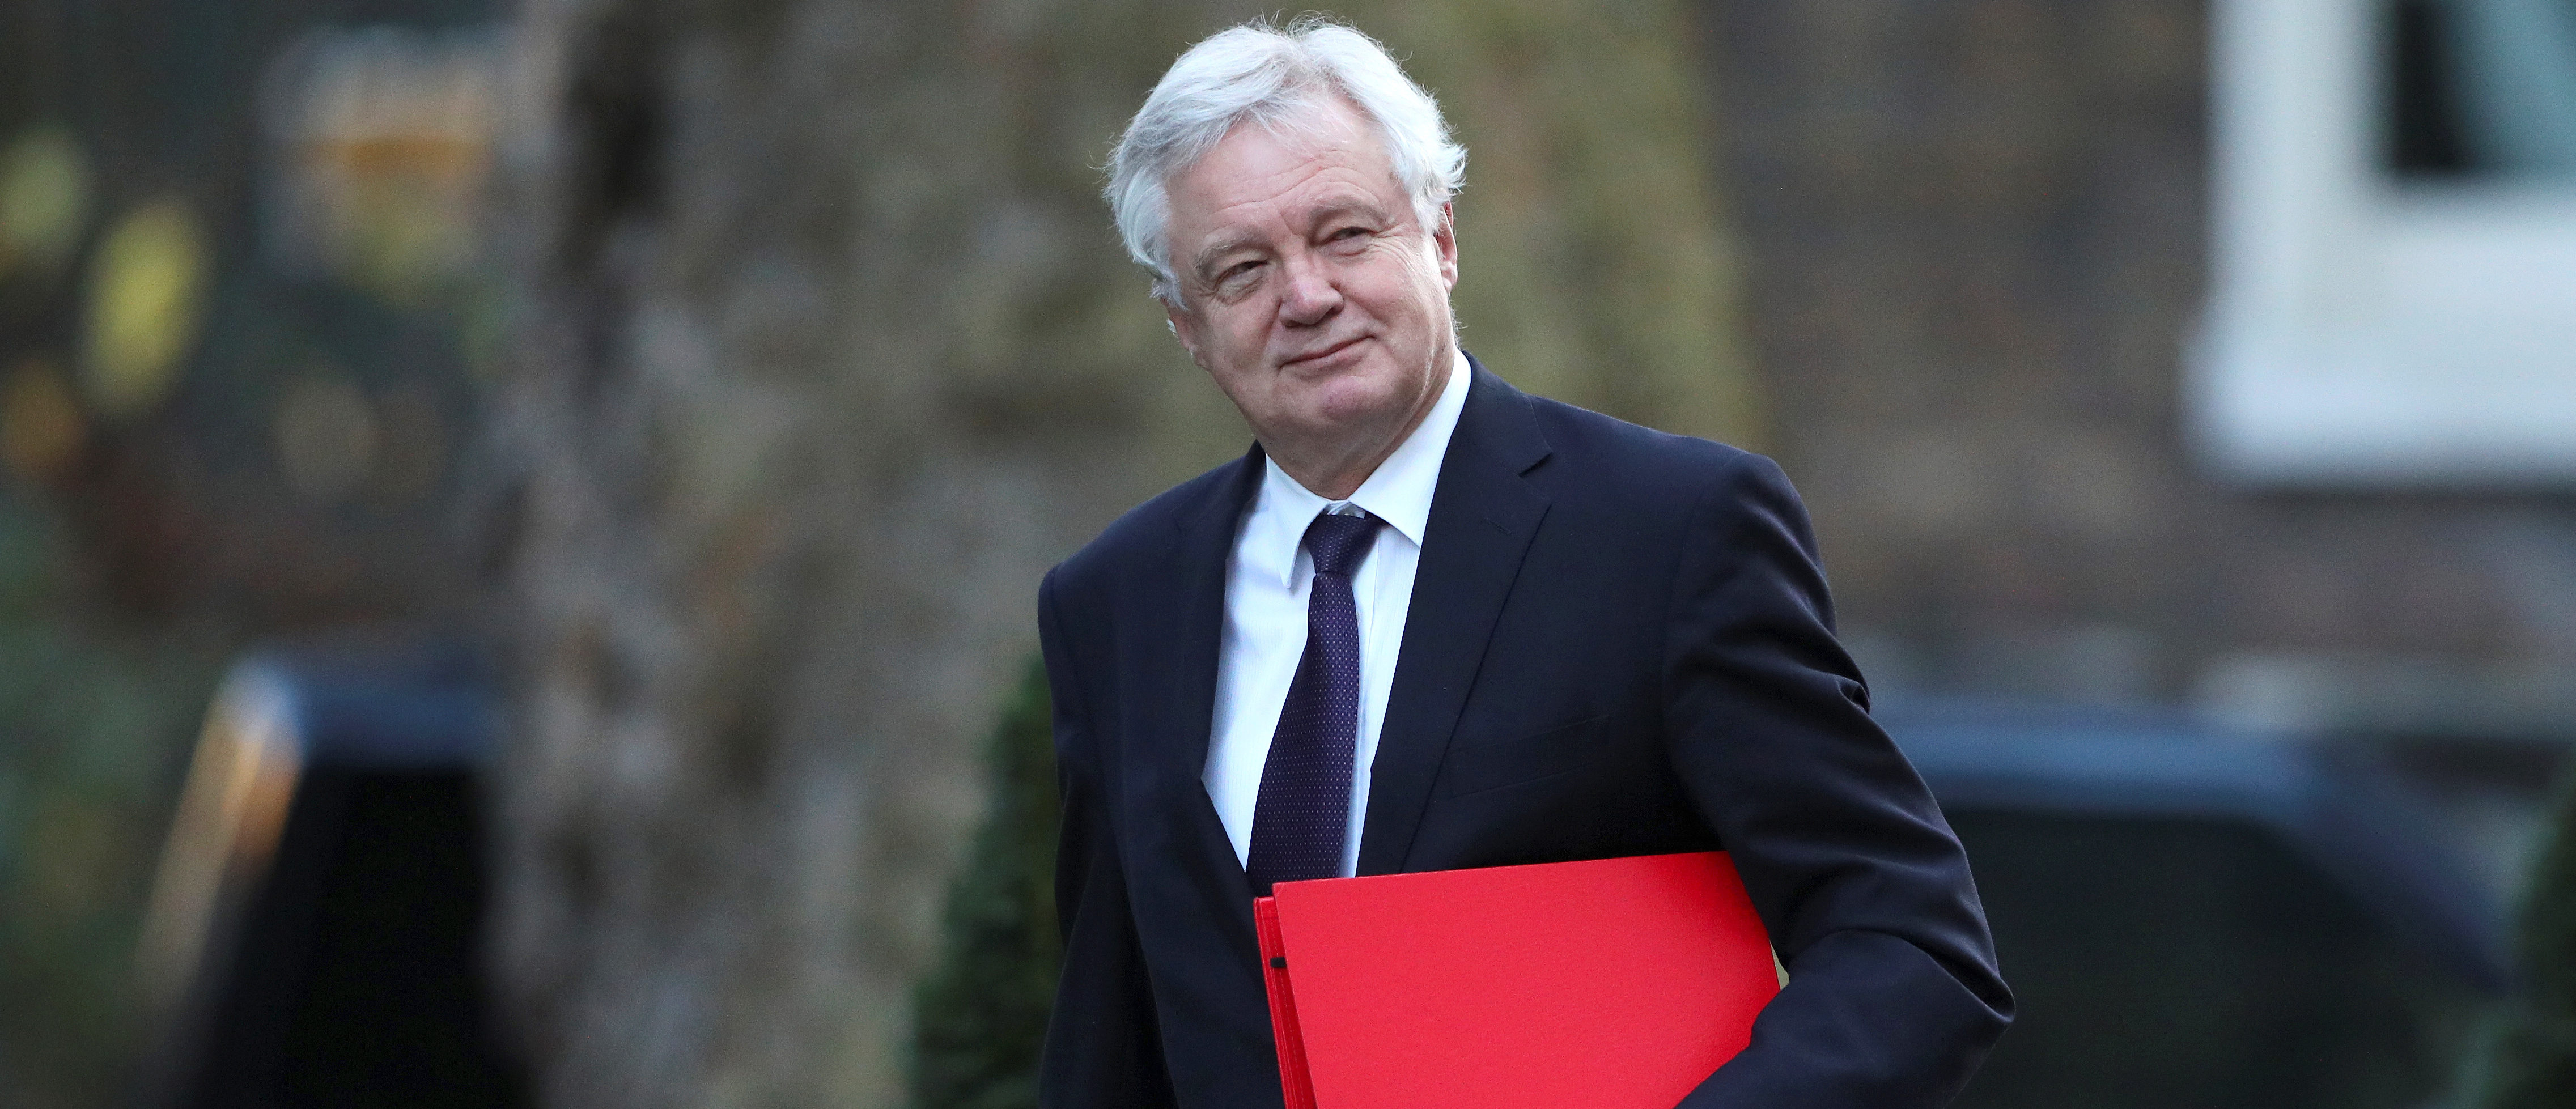 Britain's Secretary of State for Exiting the European Union David Davis arrives in Downing Street in London, January 16, 2018. REUTERS/Hannah McKay - RC1F0BE11B80